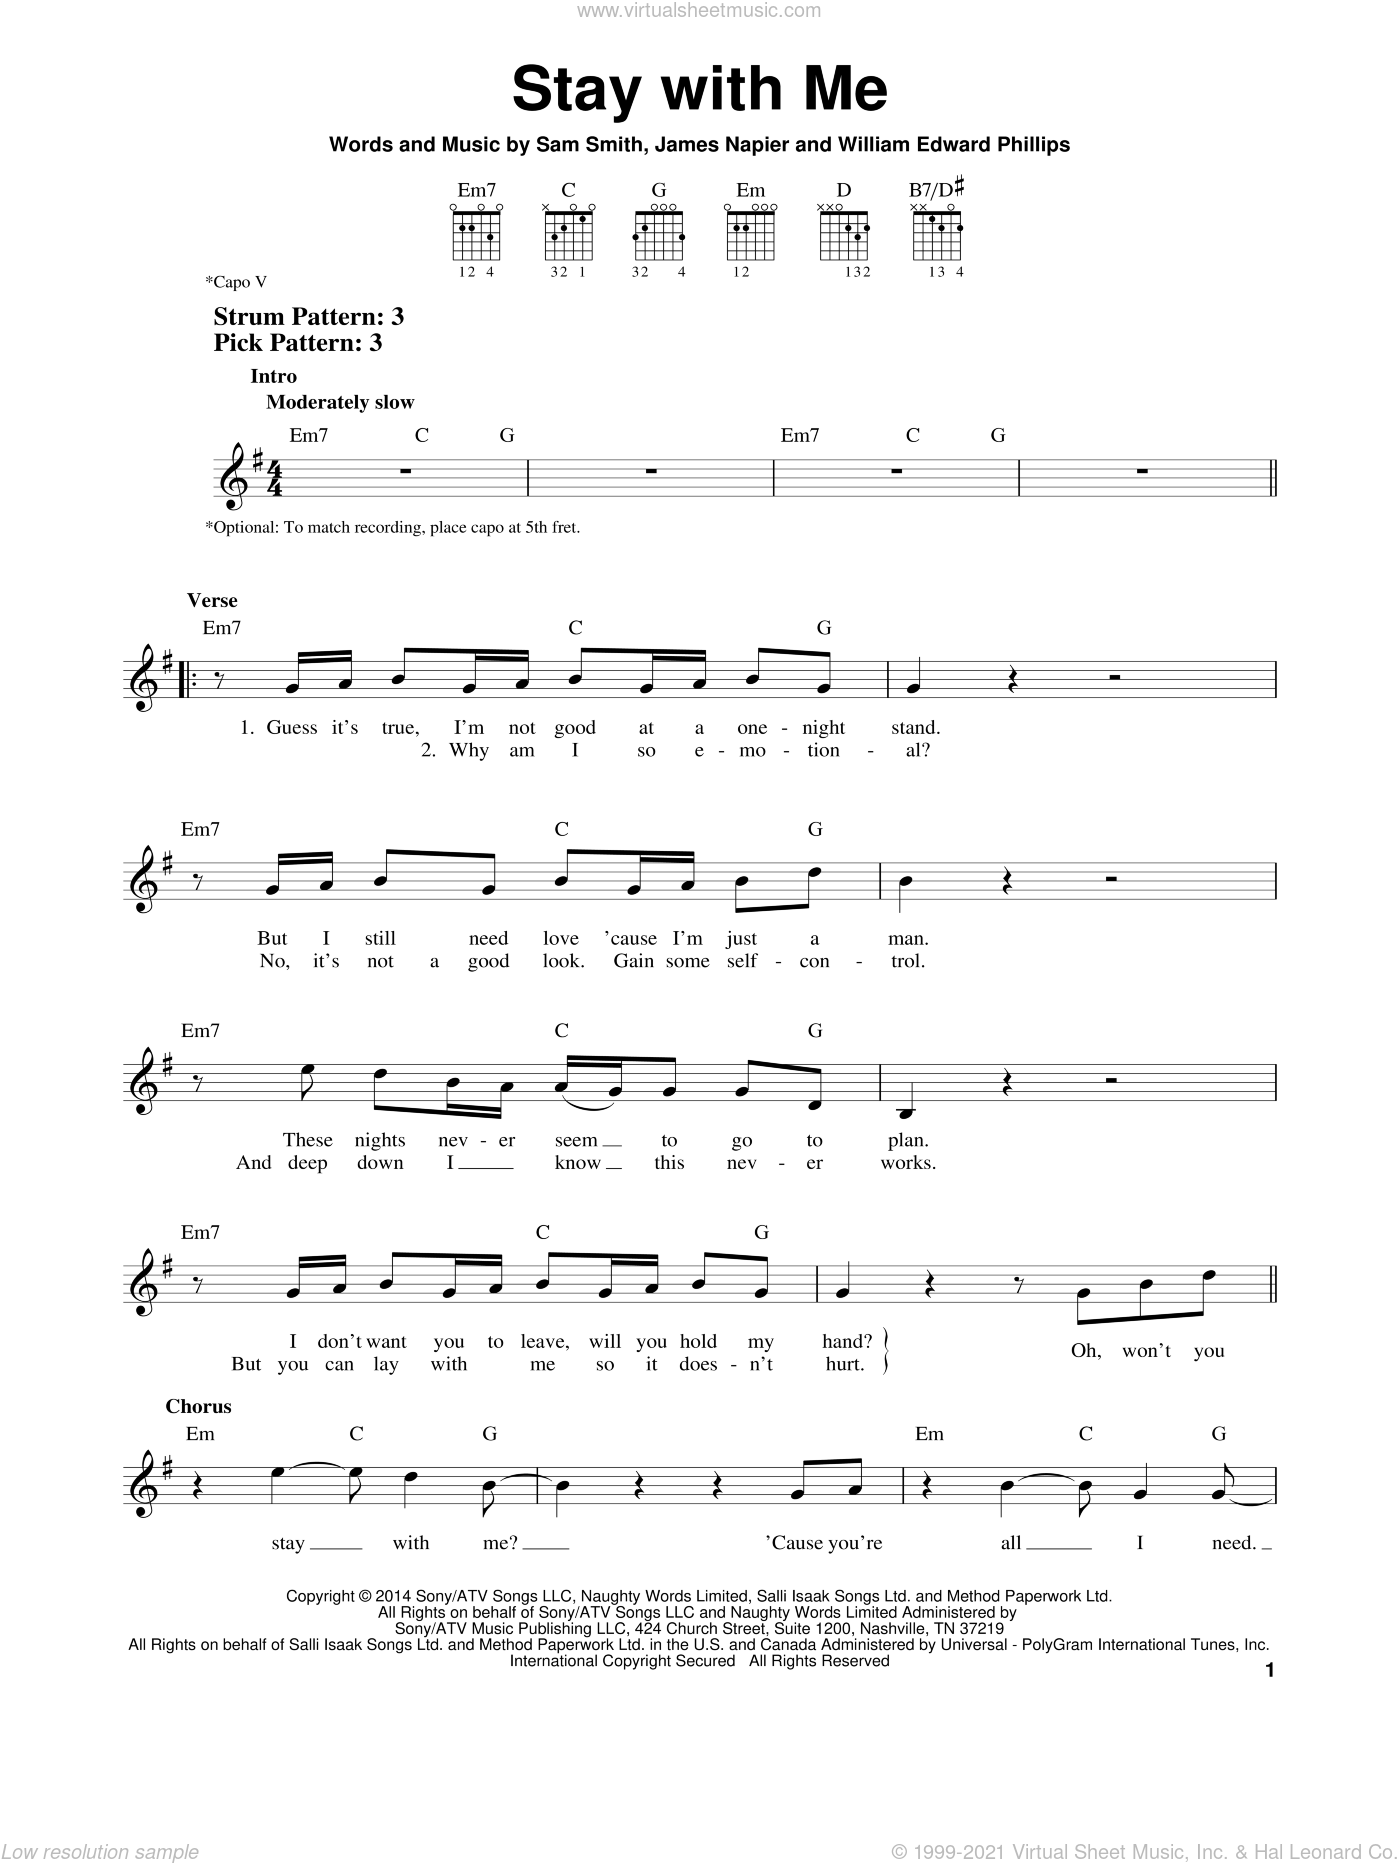 Stay With Me sheet music for guitar solo (chords) by William Edward Phillips, James Napier and Sam Smith. Score Image Preview.